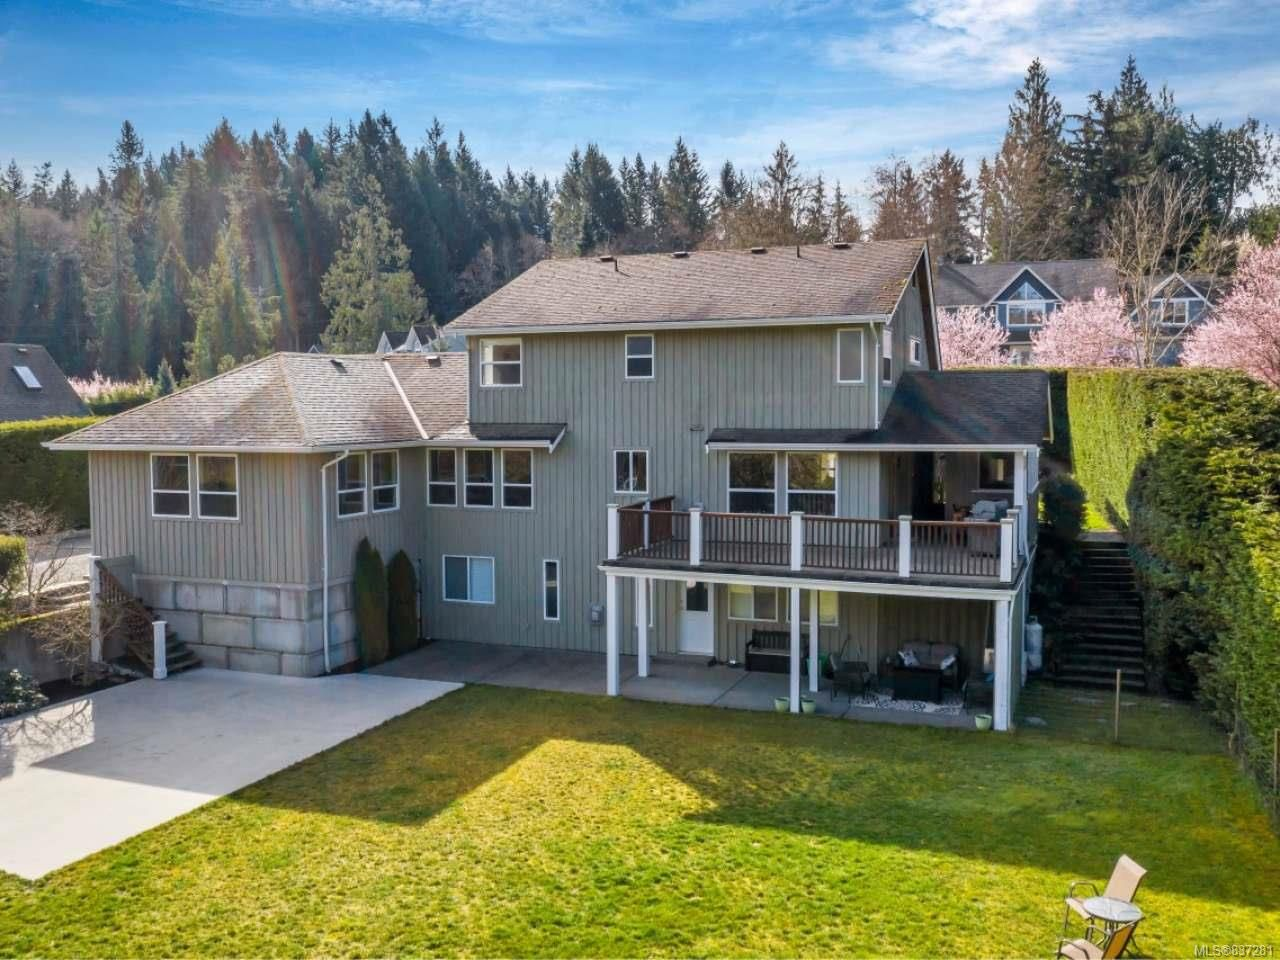 Photo 39: Photos: 925 Lilmac Rd in MILL BAY: ML Mill Bay House for sale (Malahat & Area)  : MLS®# 837281